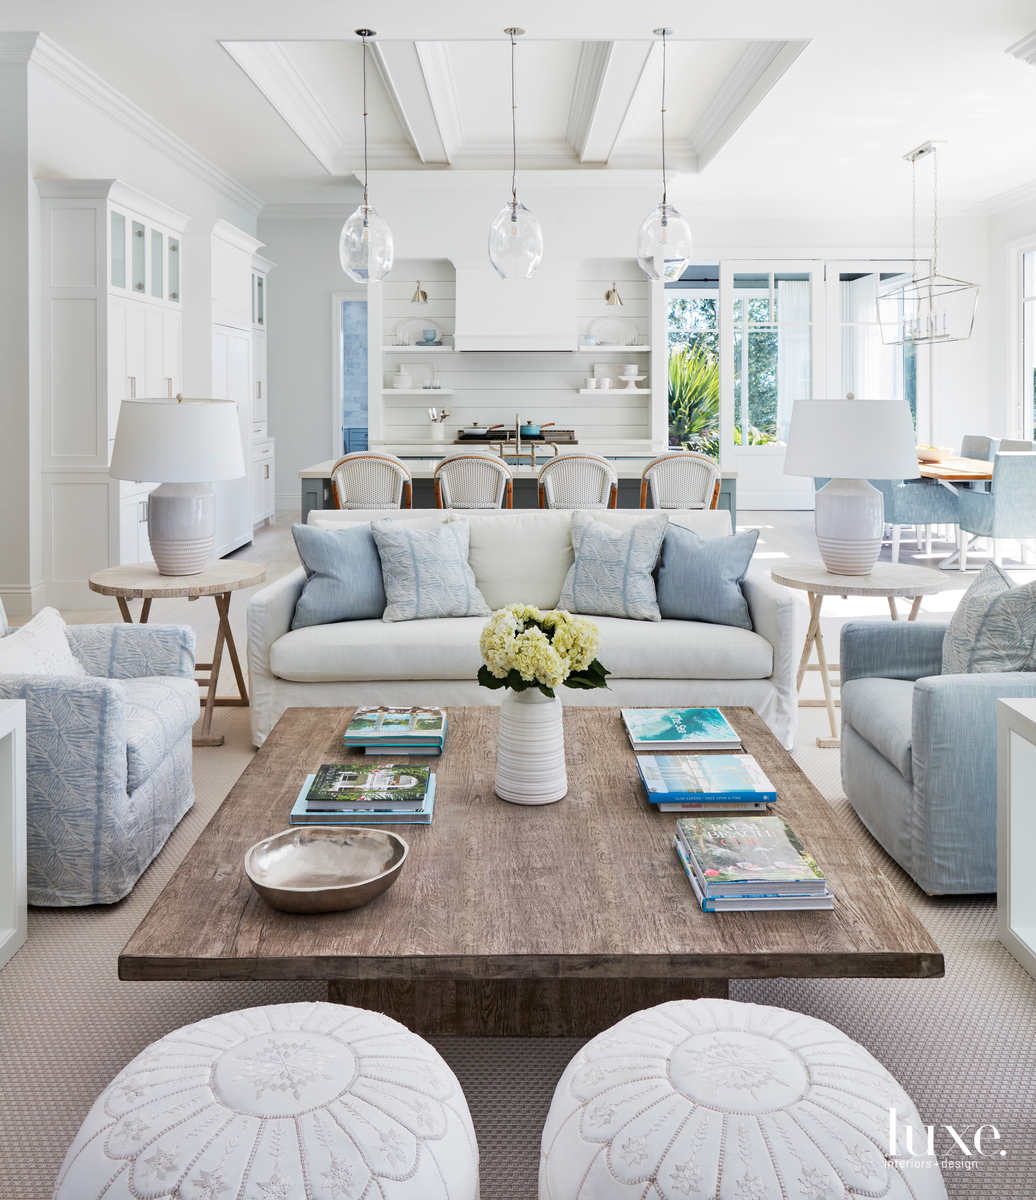 Soft Blues And Whites Fill A Serene Florida Retreat {Soft Blues And Whites Fill A Serene Florida Retreat} – English